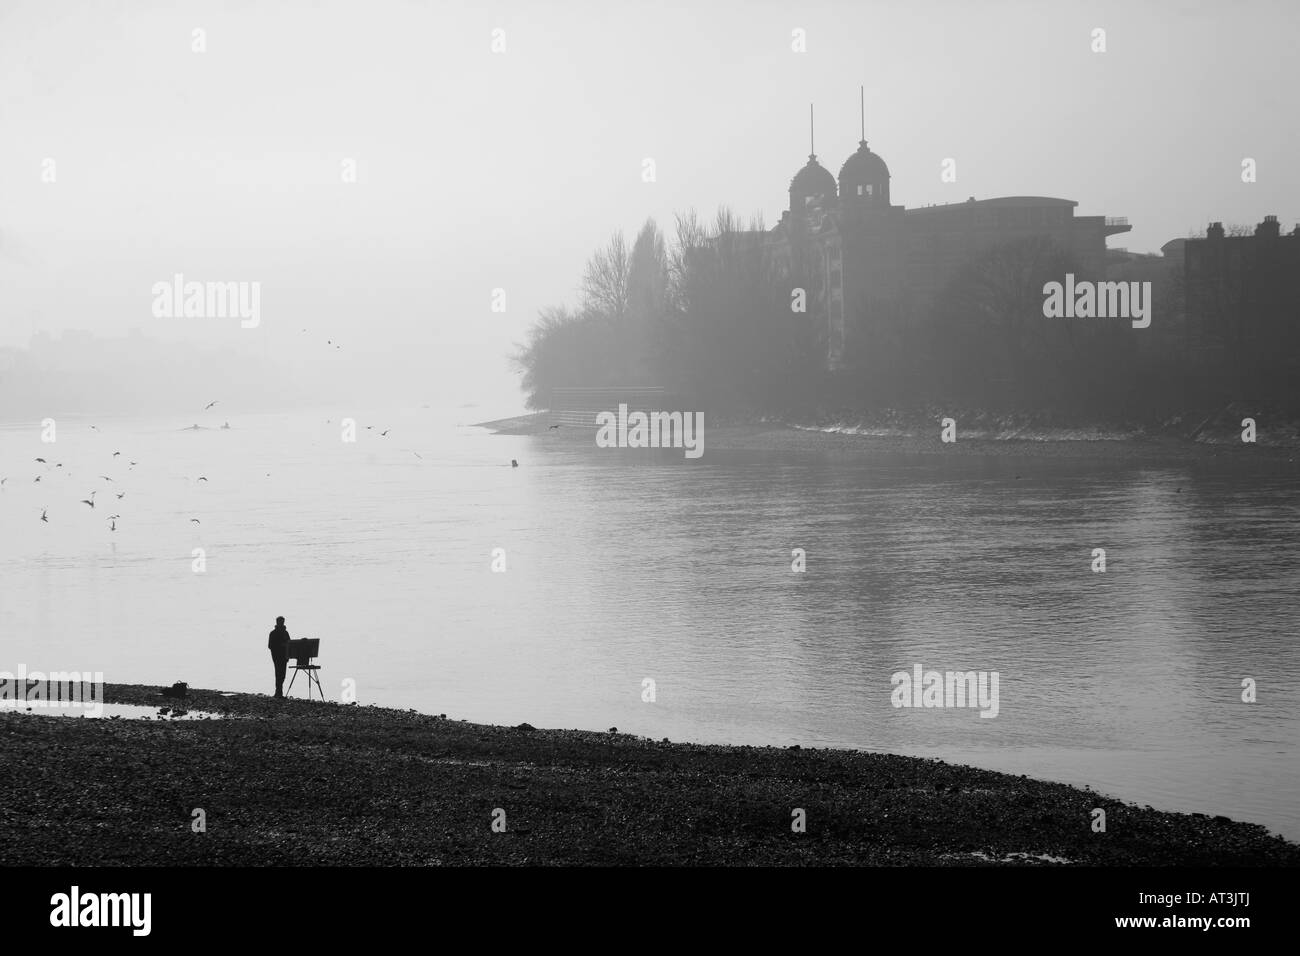 Artist painting the scene at the River Thames at Hammersmith, London - Stock Image